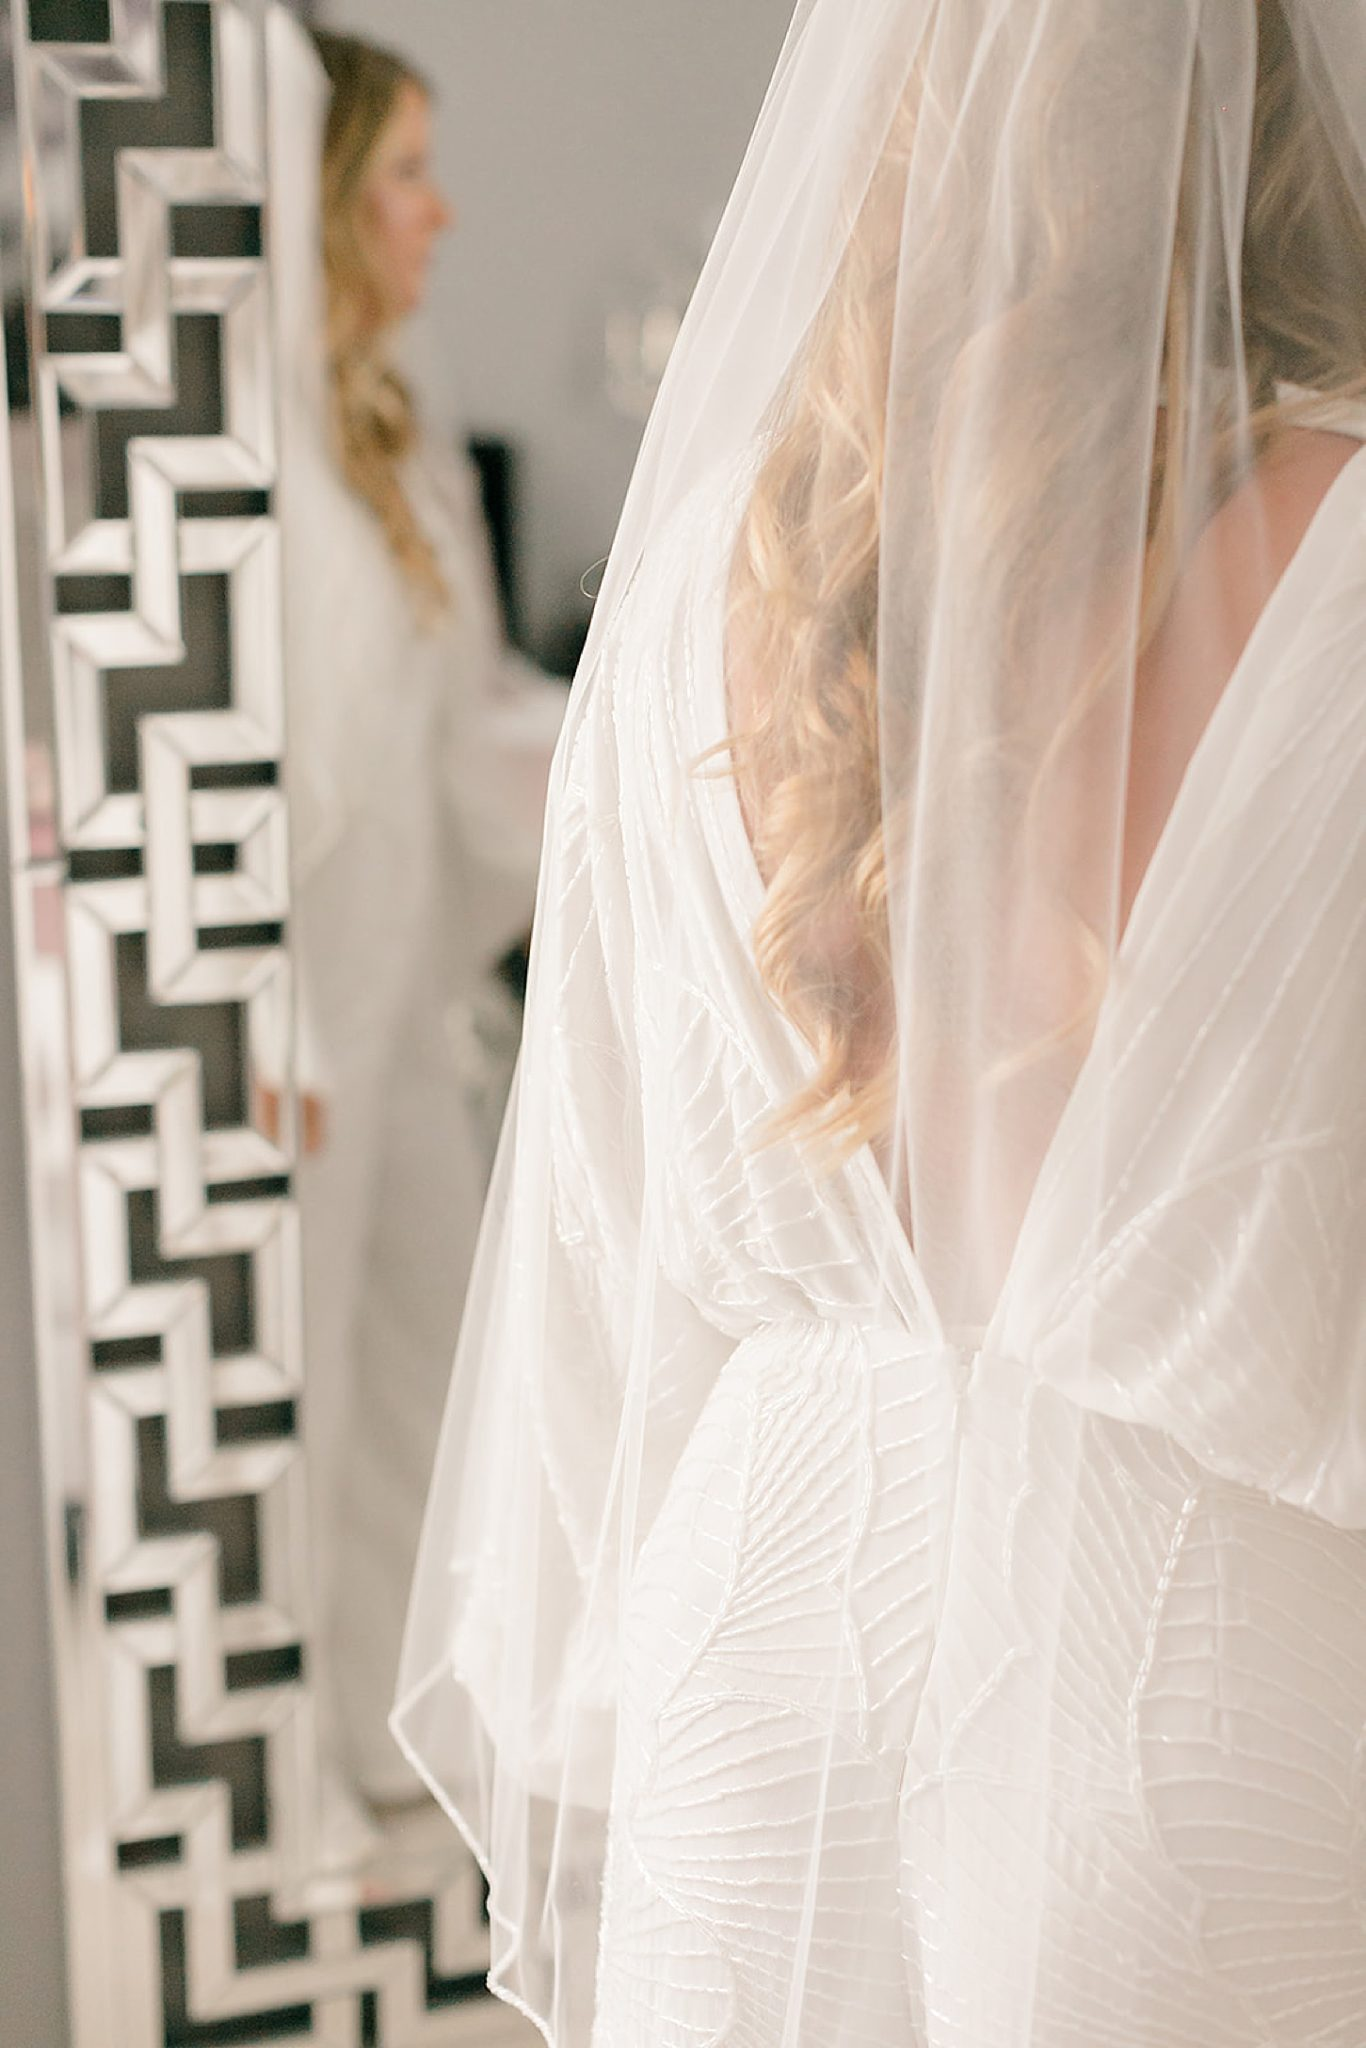 Cape May Intimate Wedding Photography by Magdalena Studios 0001 scaled